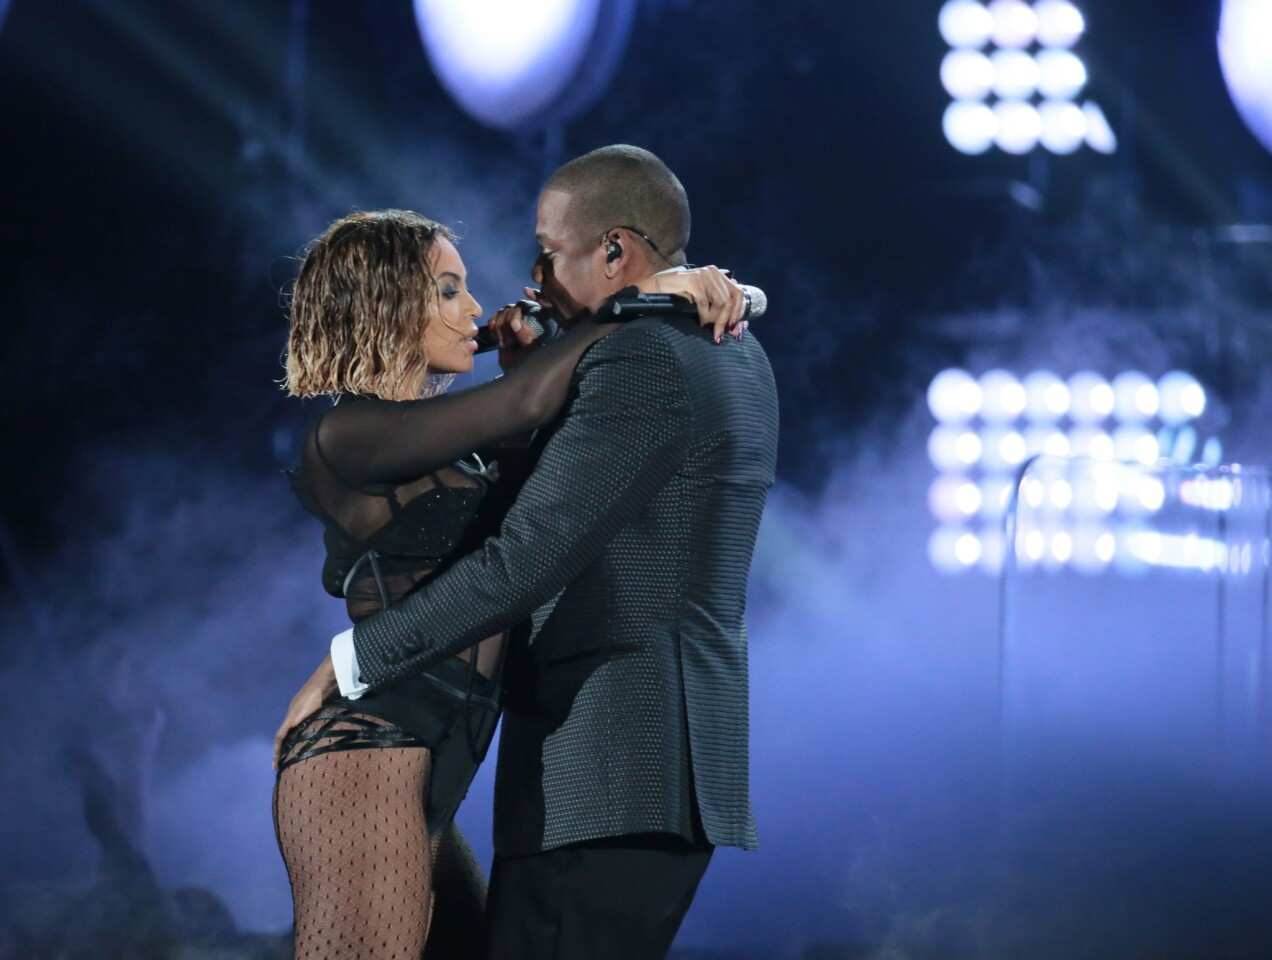 Singer Beyonce and husband Jay-Z perform on stage at the 56th Annual Grammy Awards at the Staples Center in Los Angeles, CA. Sunday, January 26, 2014.